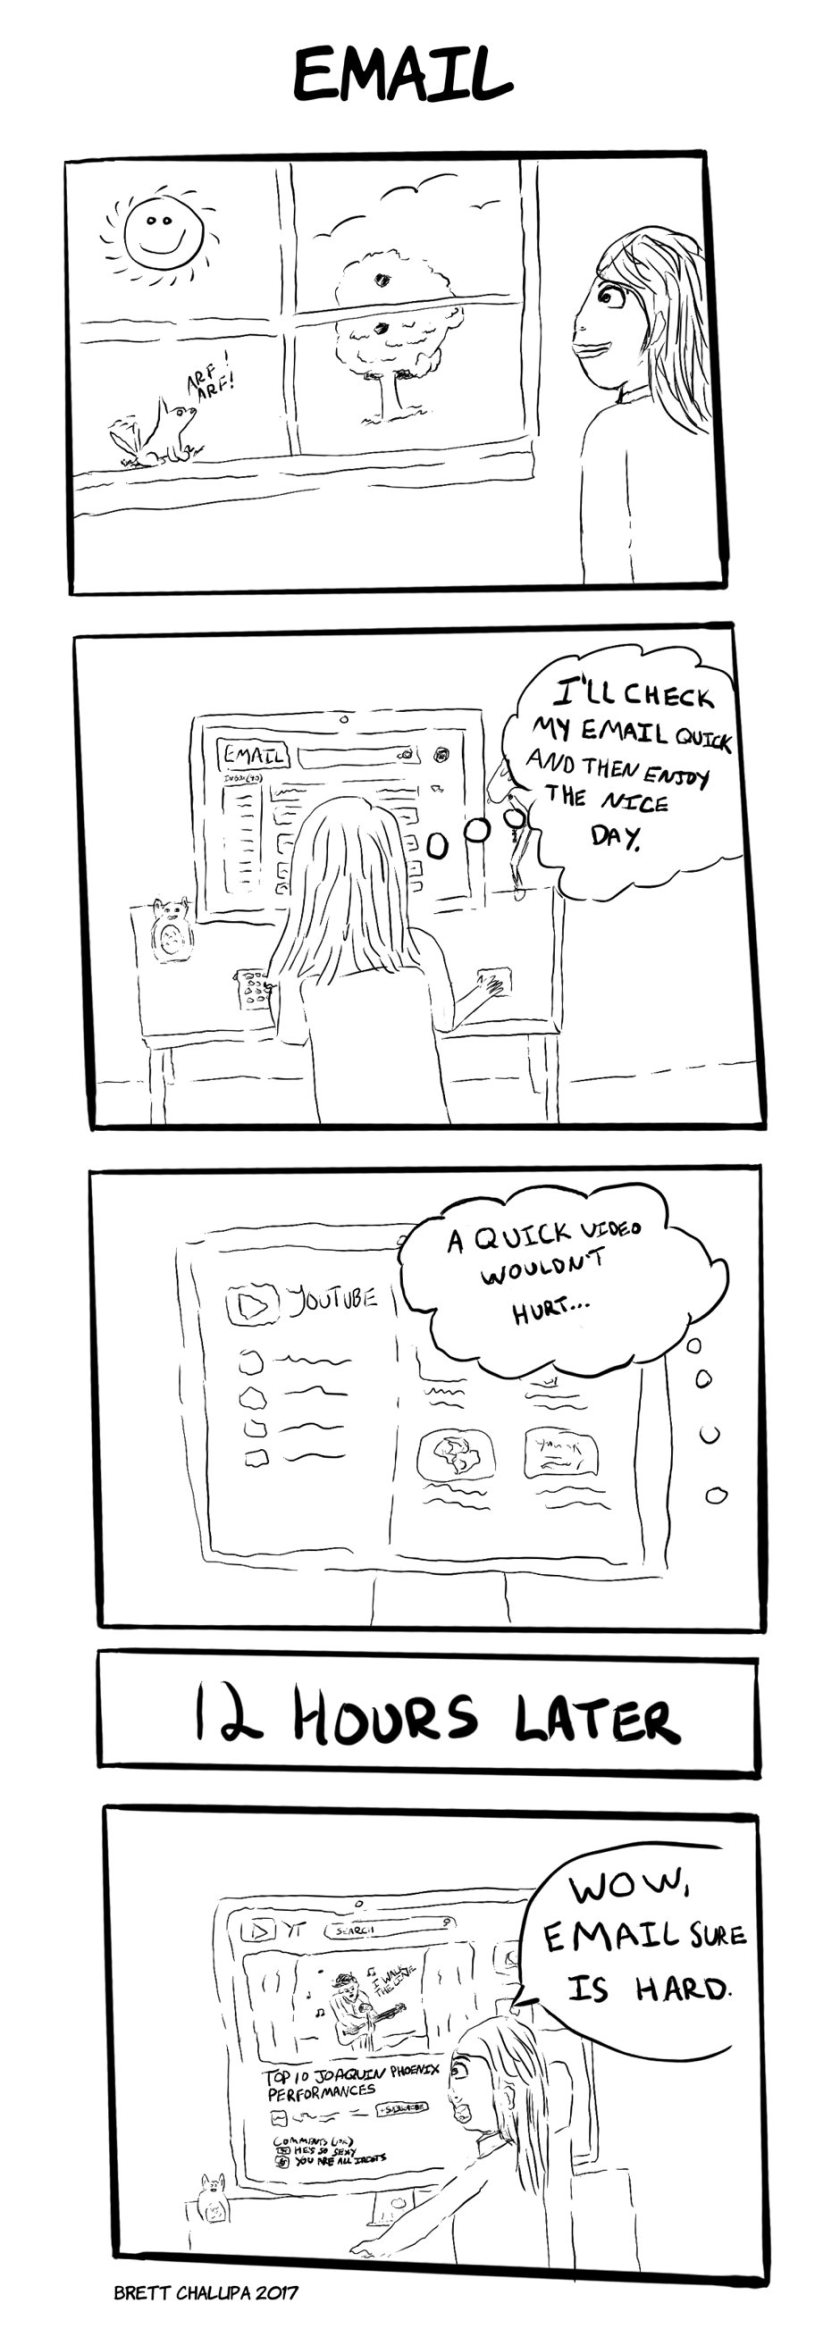 Waves Comic - Email - Optimized.jpg